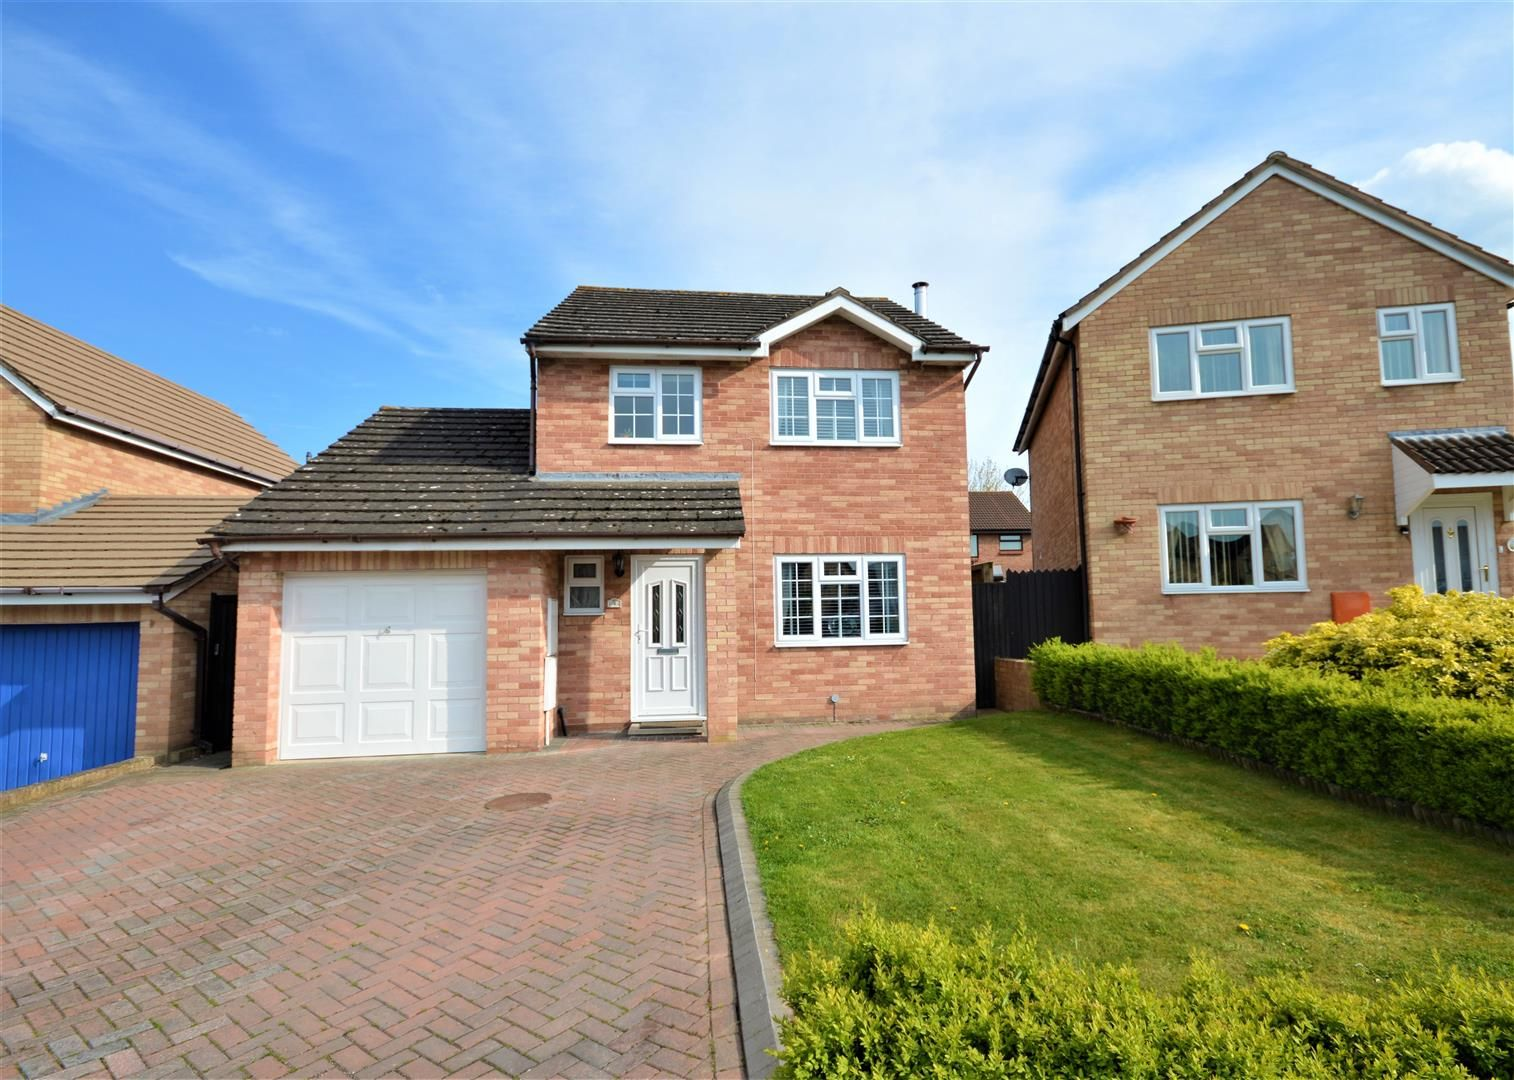 3 bed detached for sale in Belmont, HR2